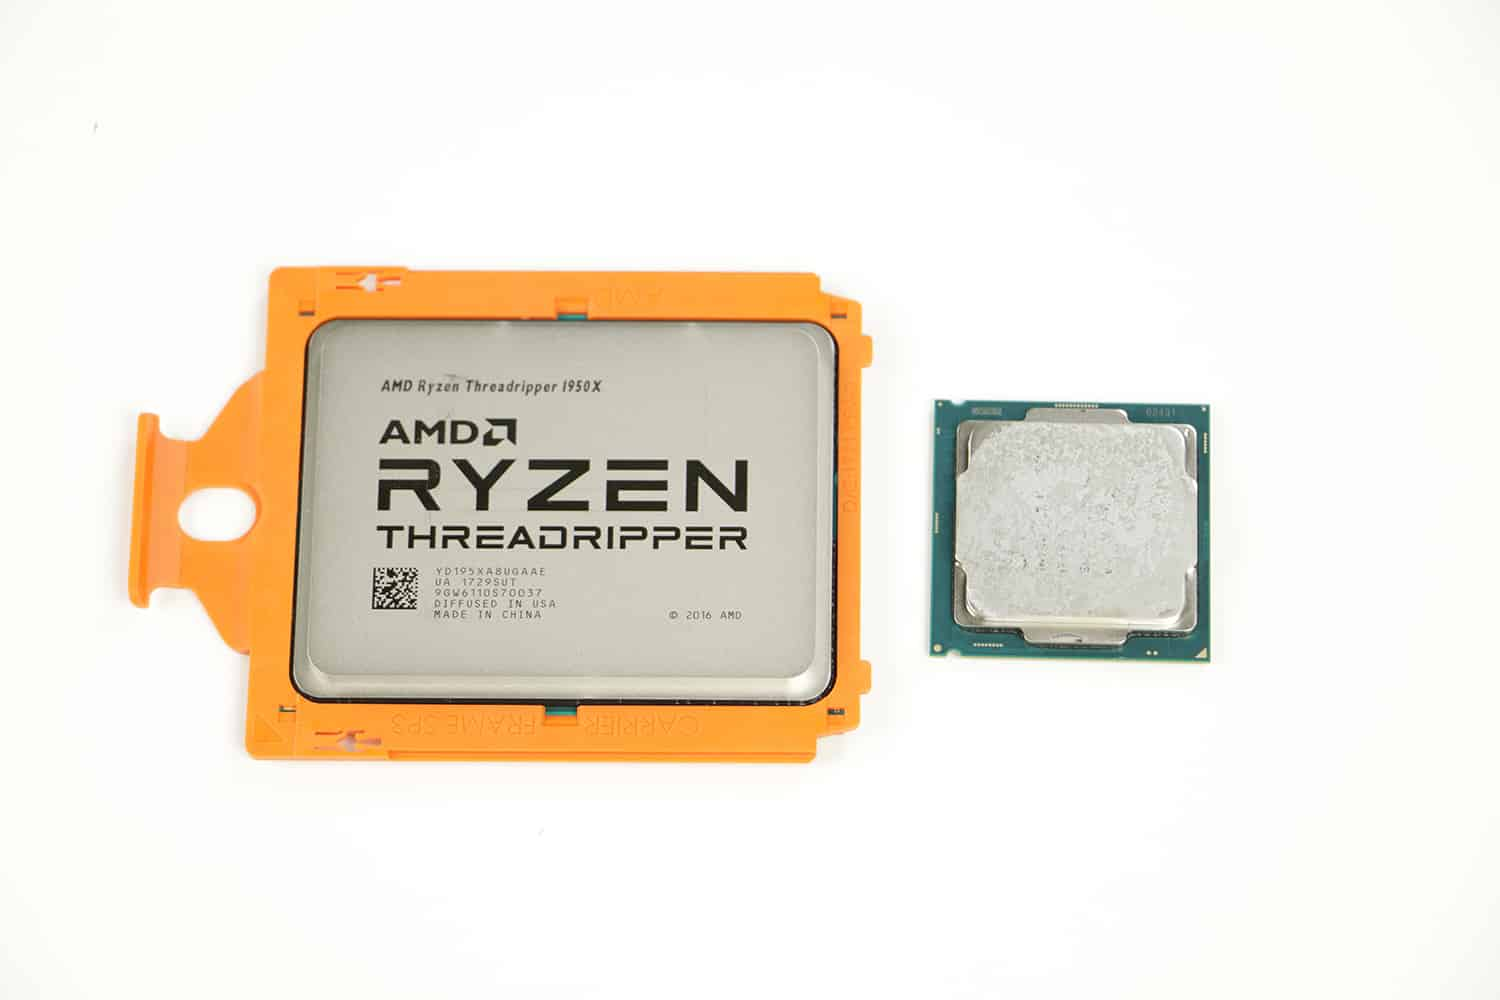 Ryzen Threadripper 1950x VS Intel Kaby Lake